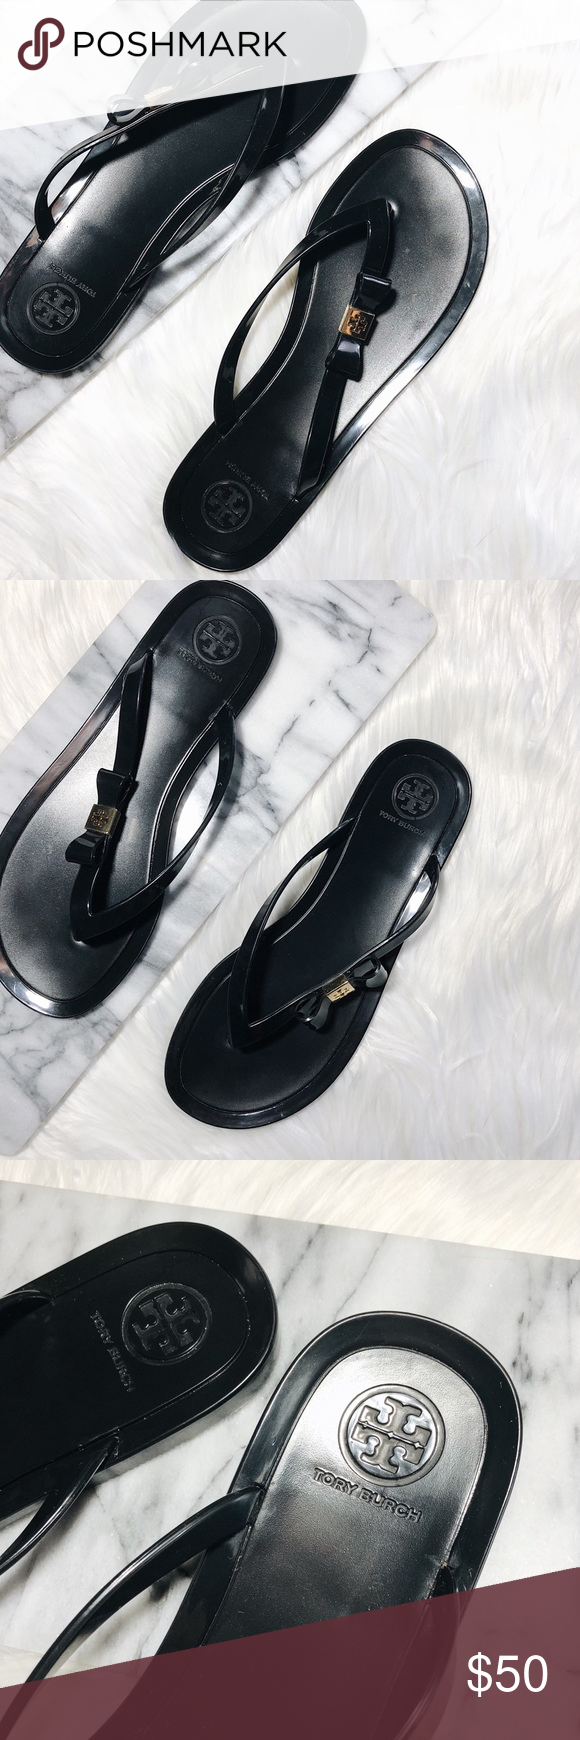 ececf81d8e05fb Tory Burch Michaela Bow Jelly Flip Flop Black Tory Burch Michaela Bow Jelly  flip flops in